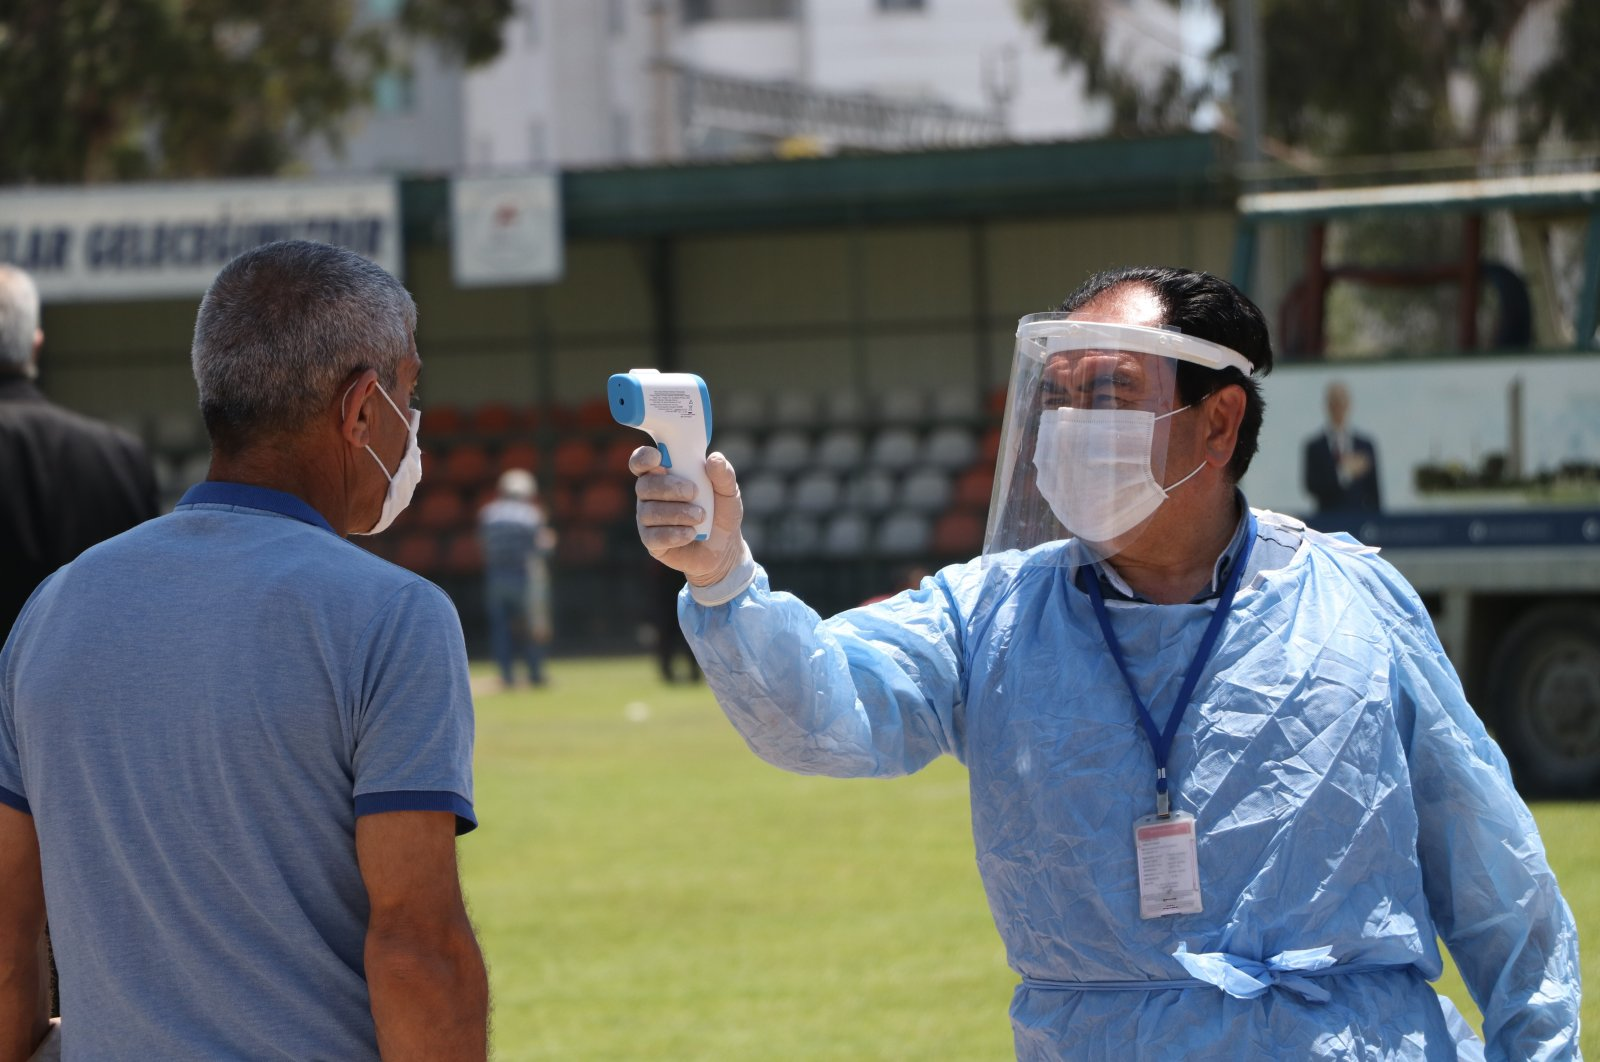 An official measures temperature of a citizen before Friday prayer in a stadium, Mersin, on May 29, 2020. (IHA Photo)